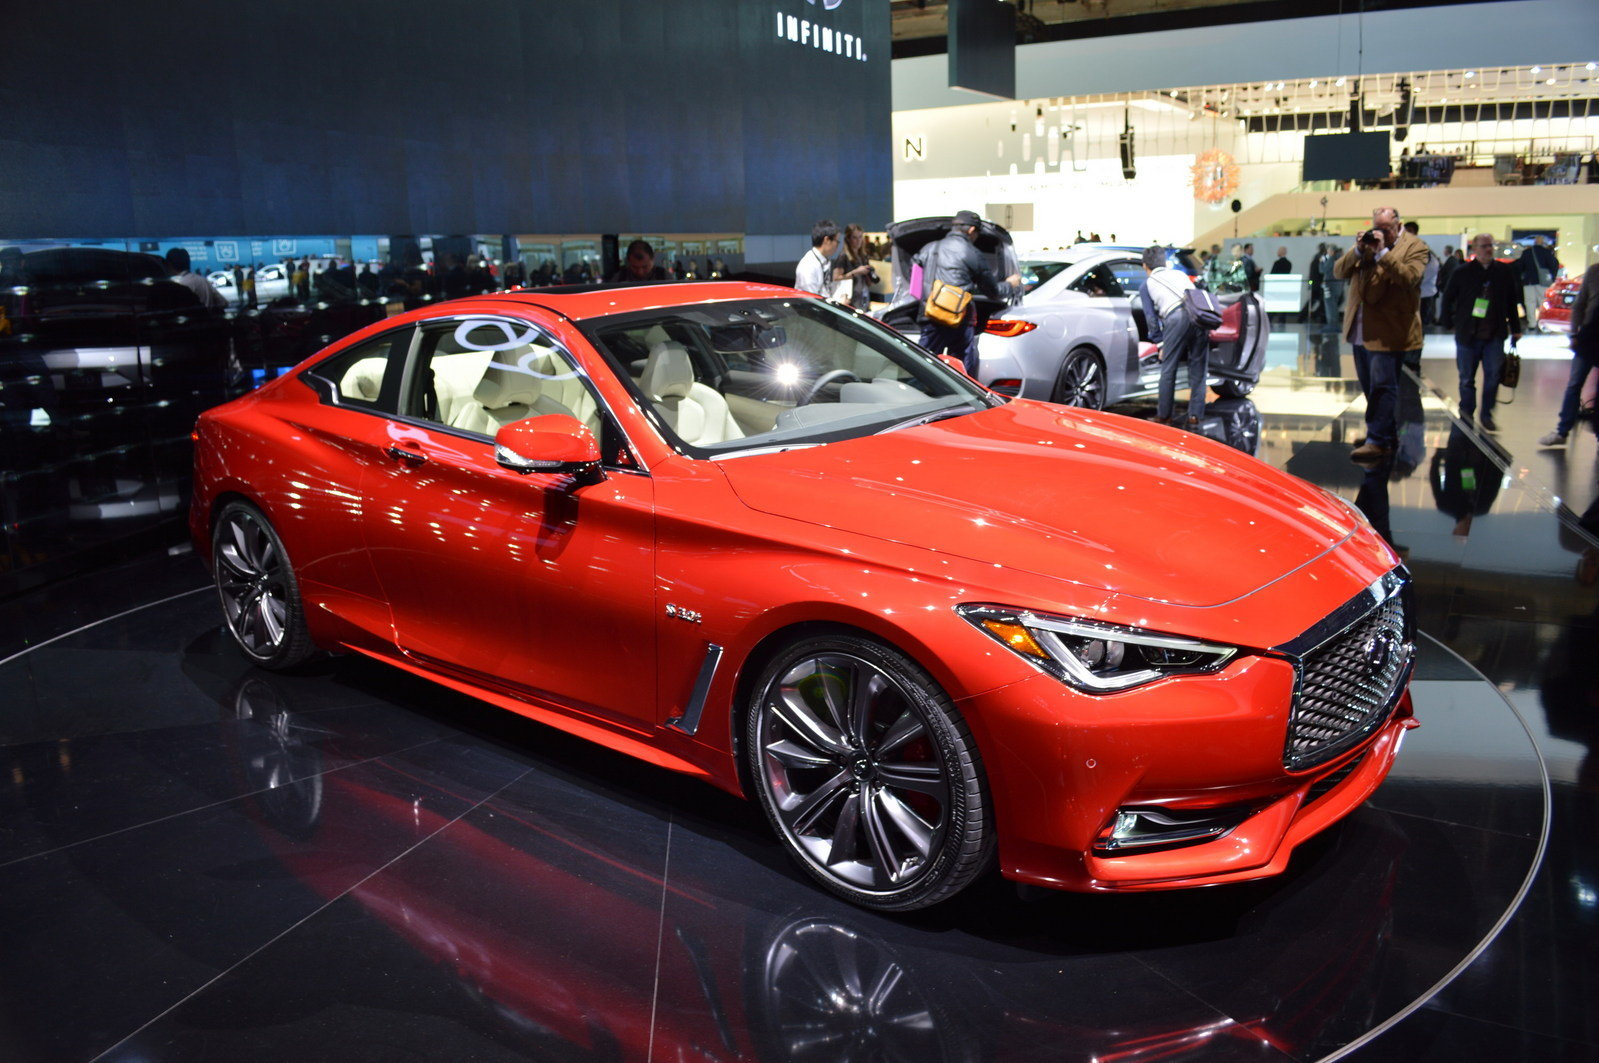 2017 infiniti q60 coupe picture 661660 car review top speed. Black Bedroom Furniture Sets. Home Design Ideas